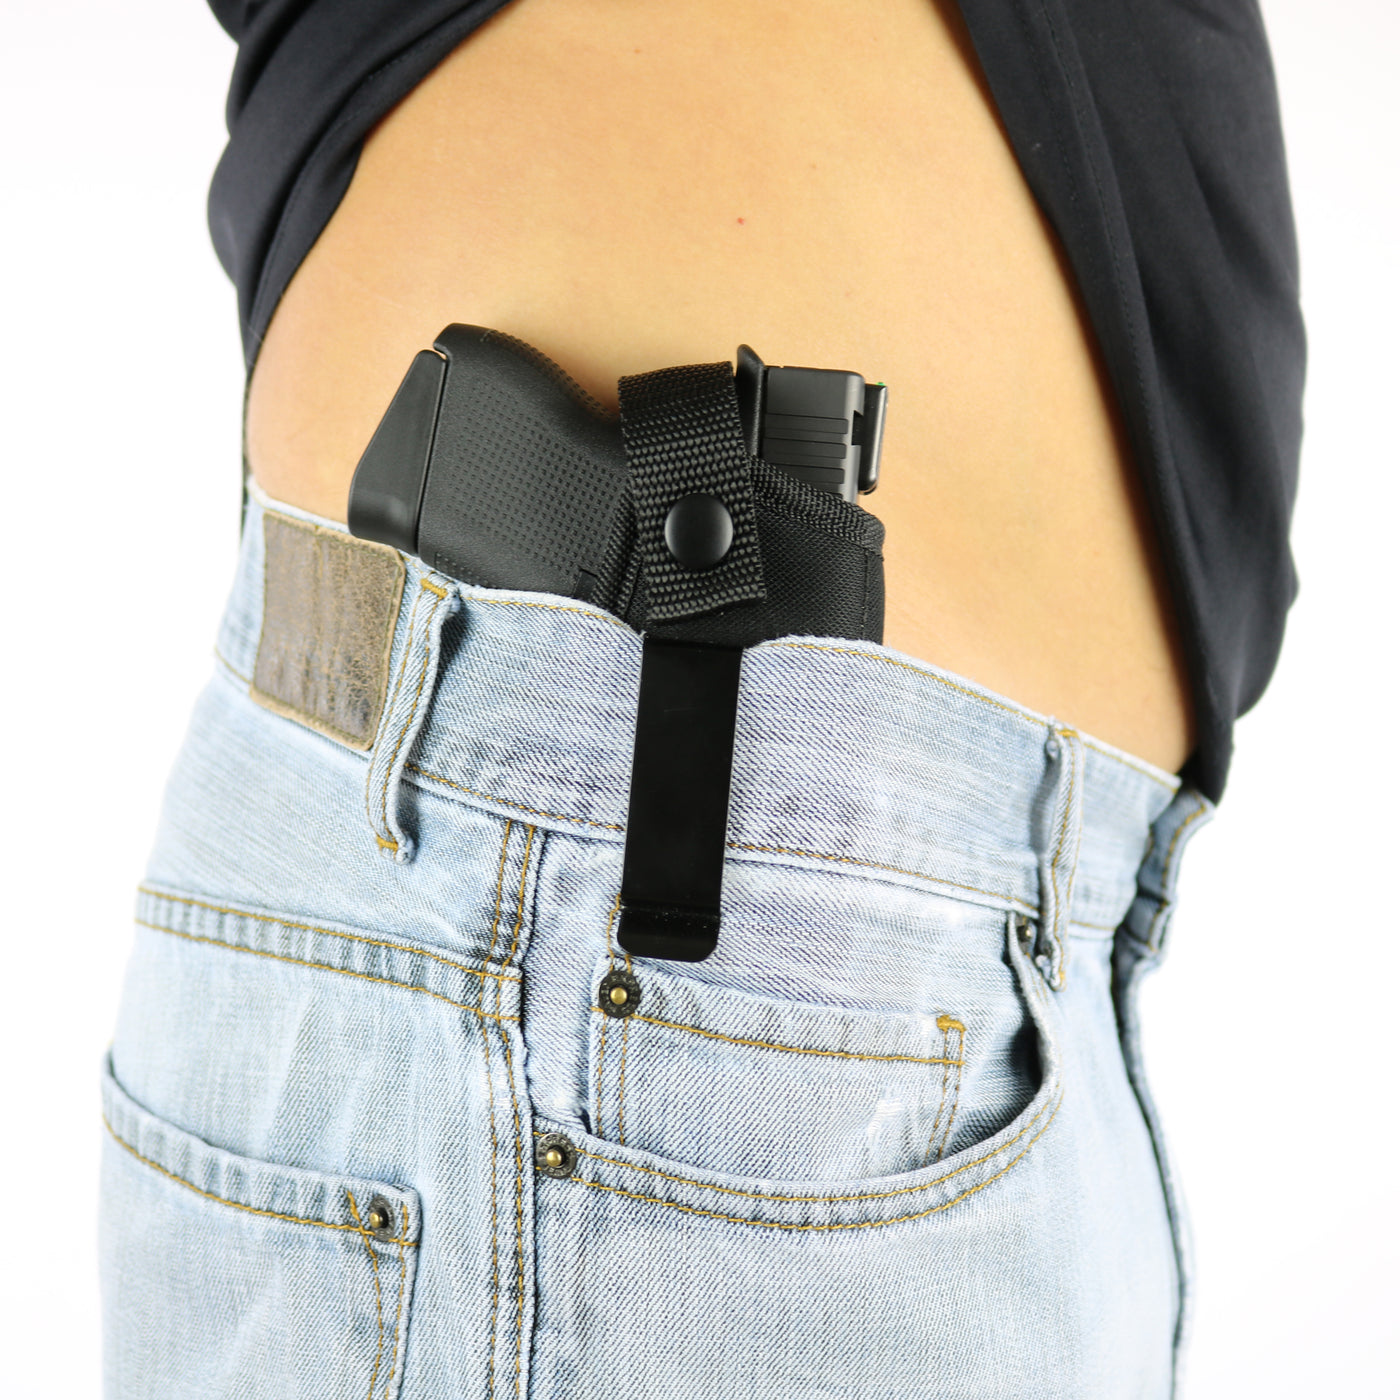 The Ultimate Concealed Carry Holster Size 3 | ComfortTac